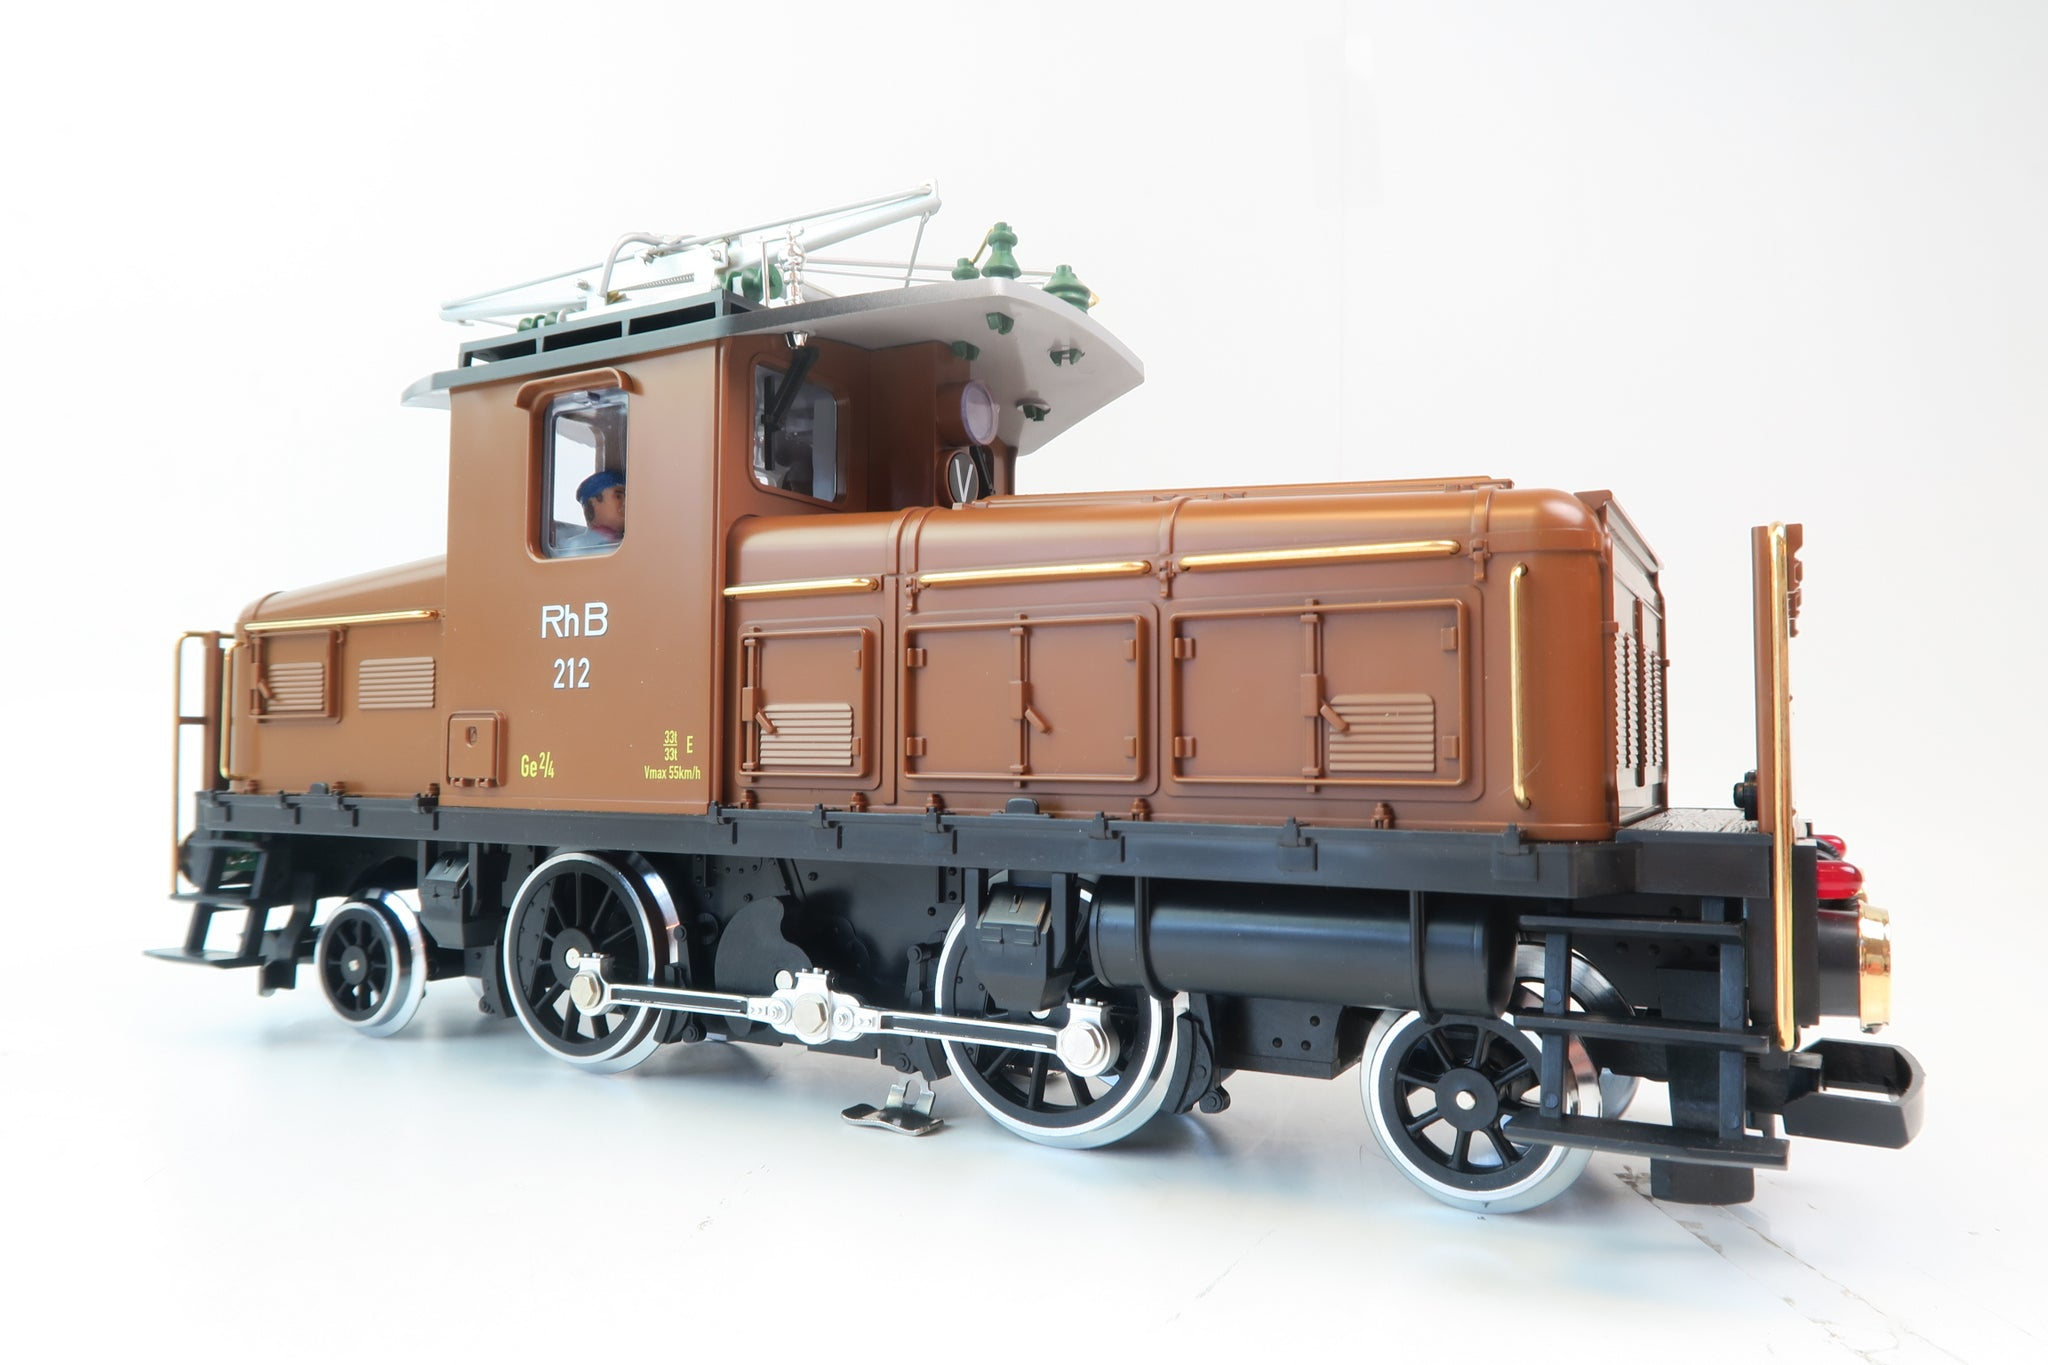 LGB G Scale 1:22.5 21440 RHB '212' Electric Locomotive